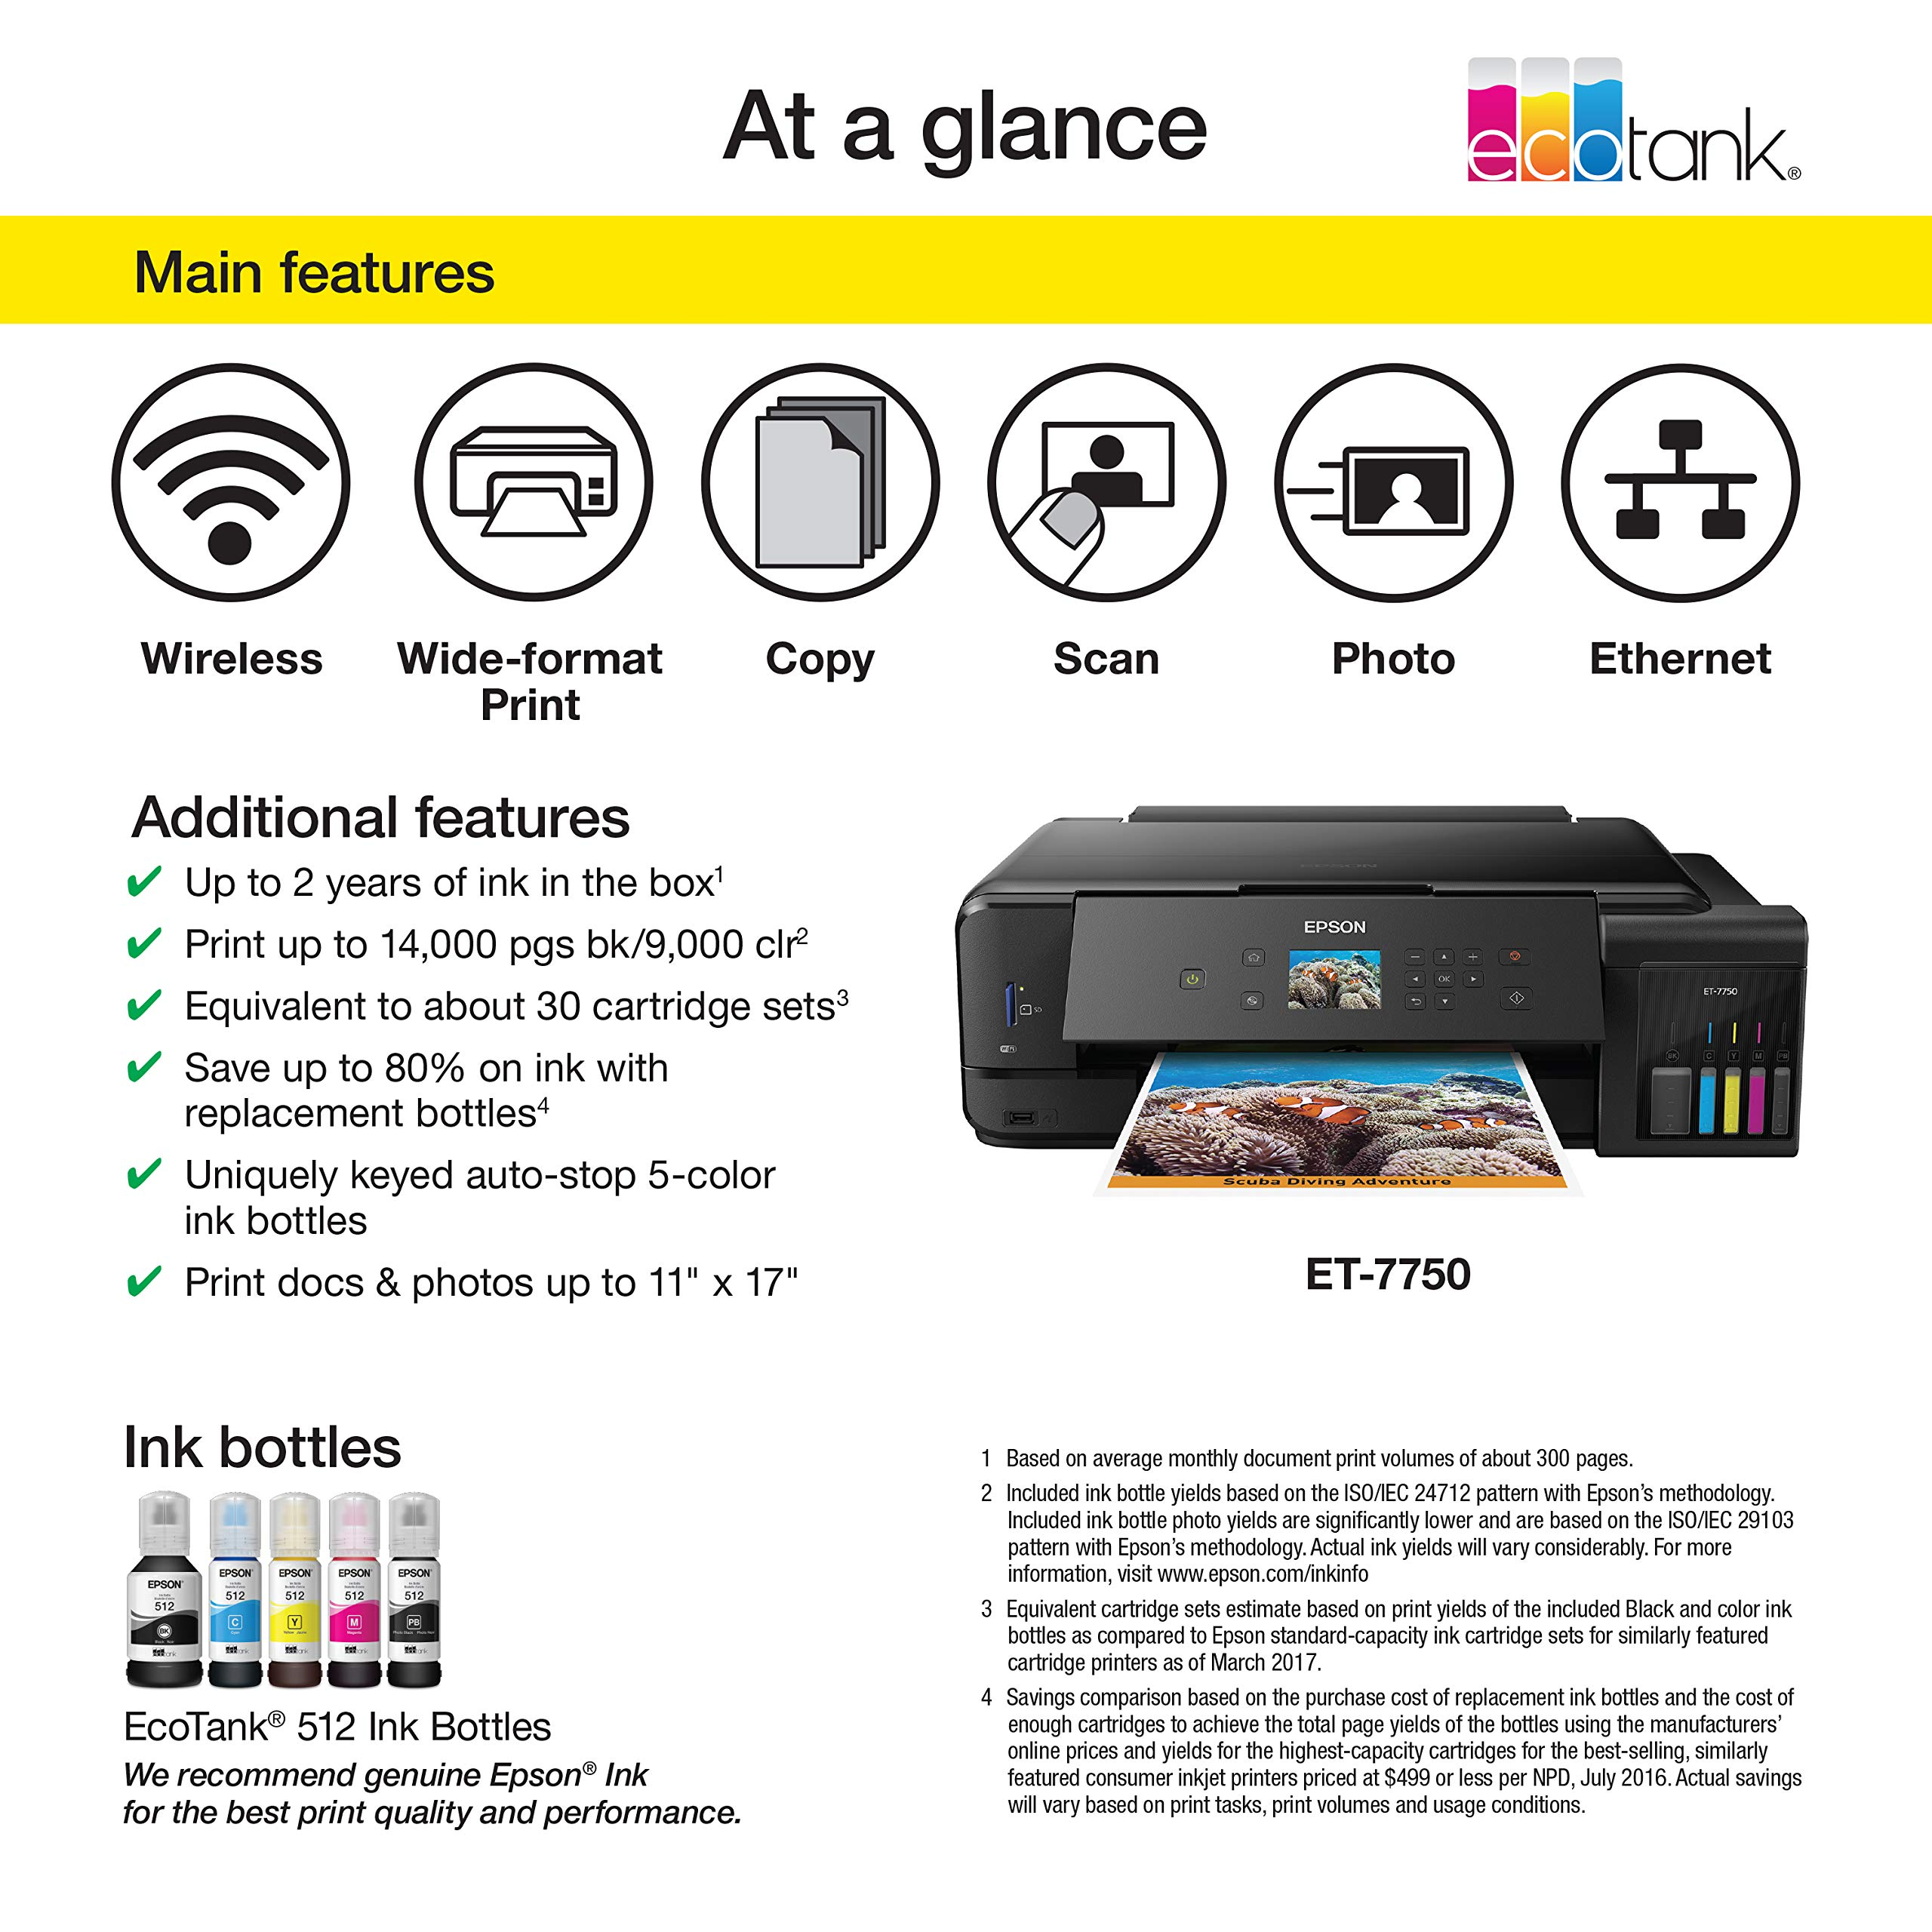 Epson Expression Premium Ecotank Wireless 5 Color All In One Supertank Printer With Scanner Copier And Ethernet Amazon Sg Electronics